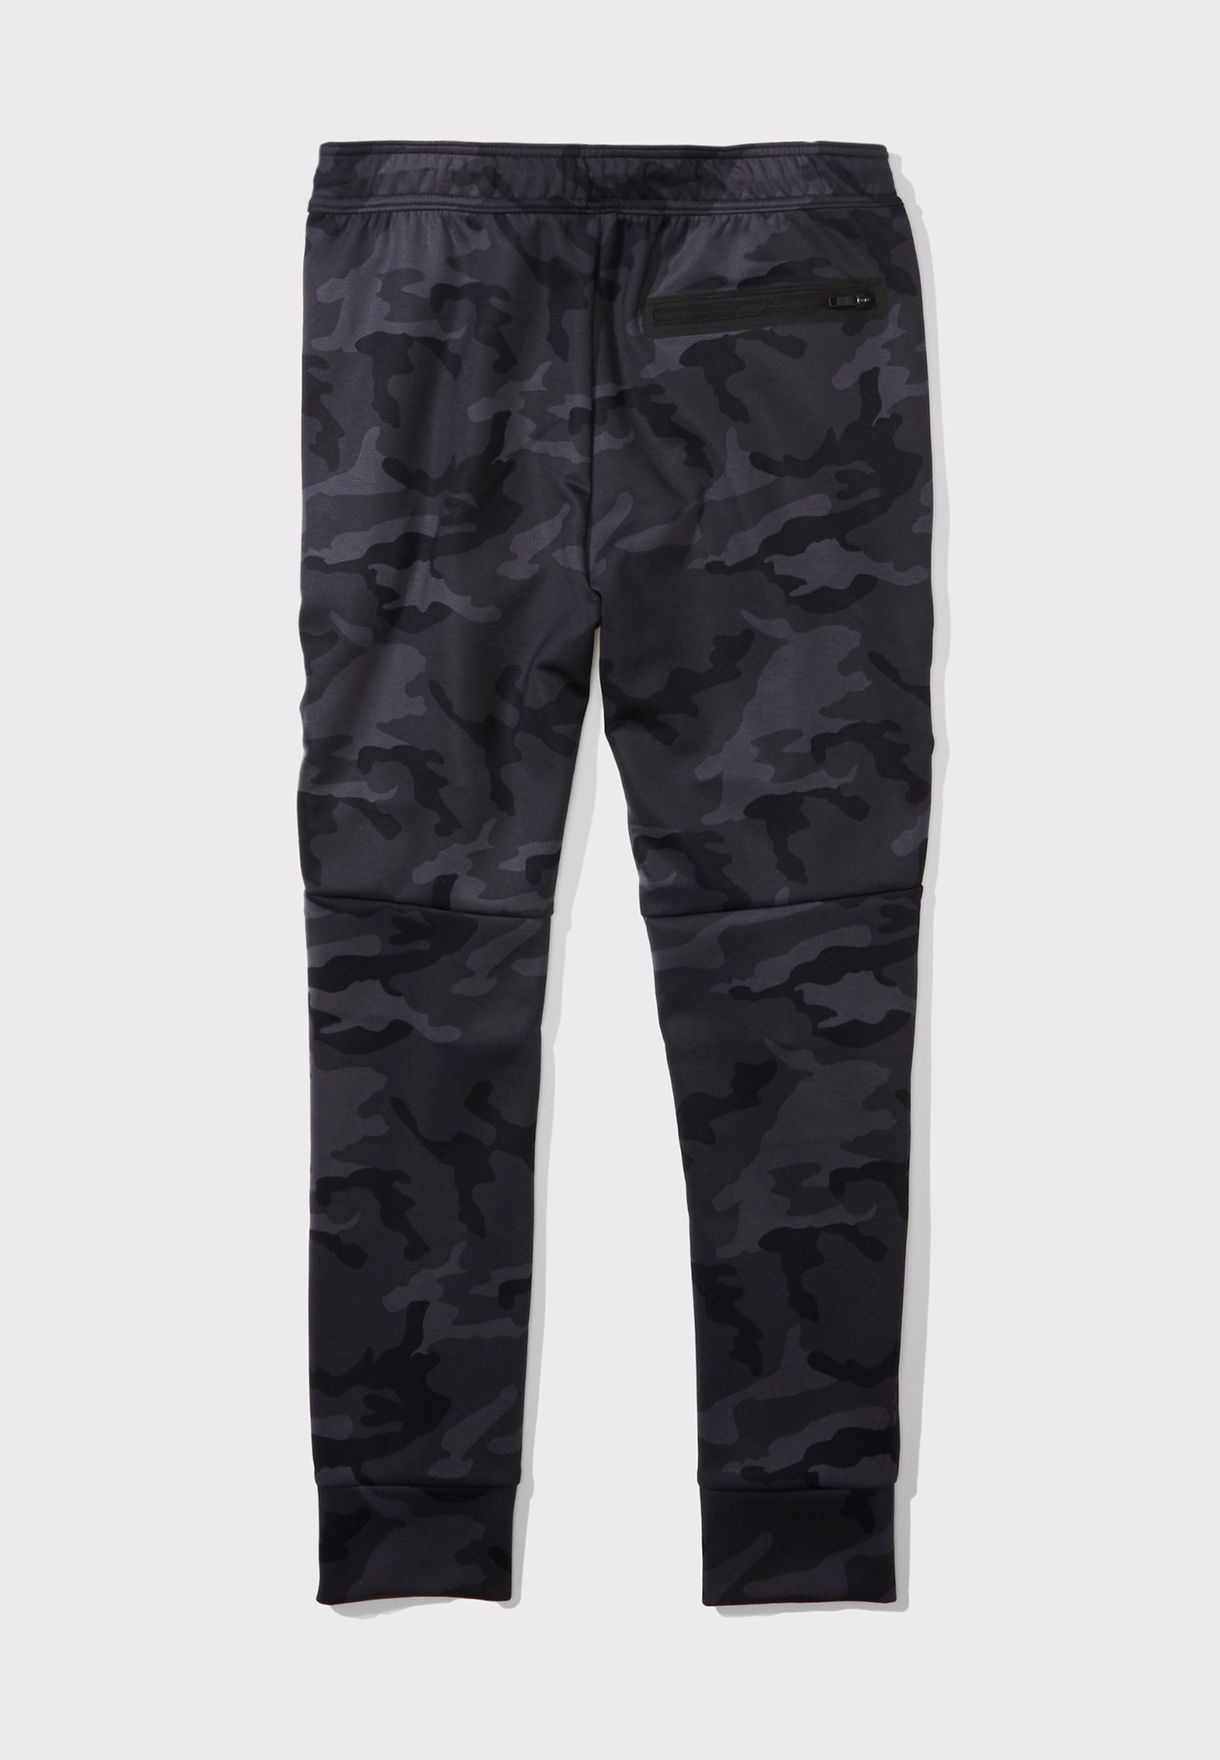 Camo Cuffed Sweatpants